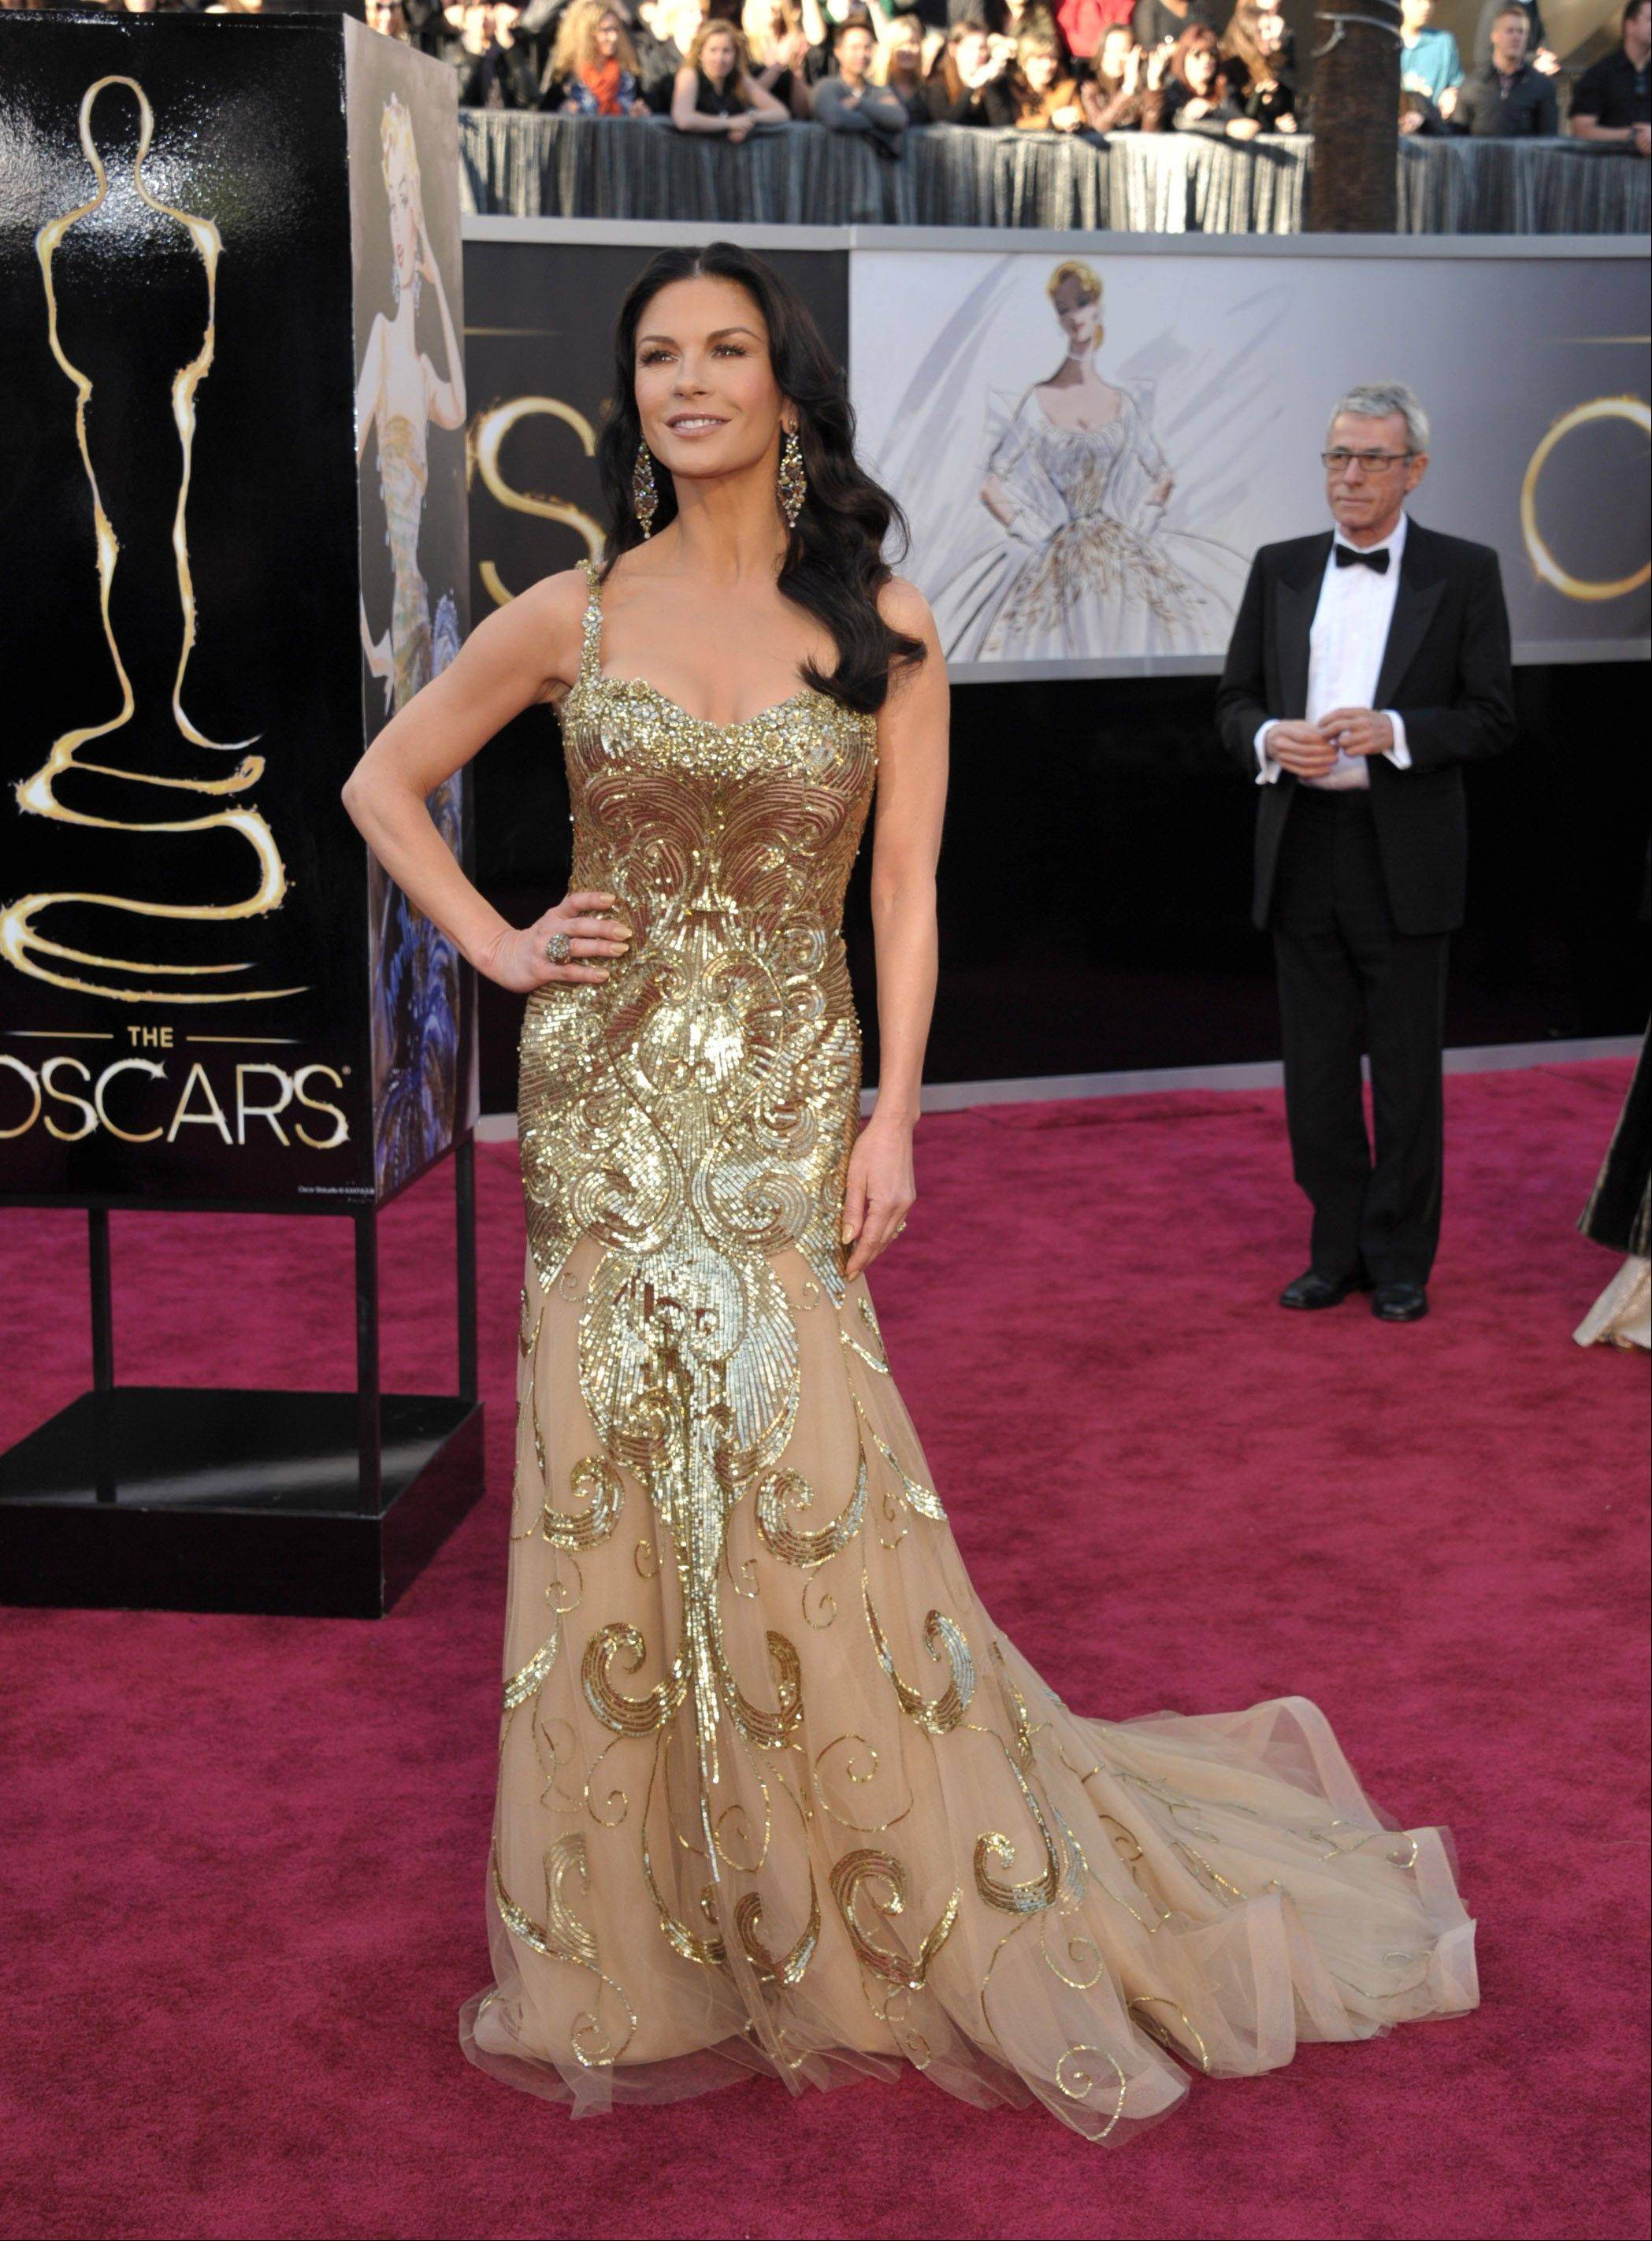 Actress Catherine Zeta-Jones arrives at the Oscars at the Dolby Theatre on Sunday in Los Angeles.